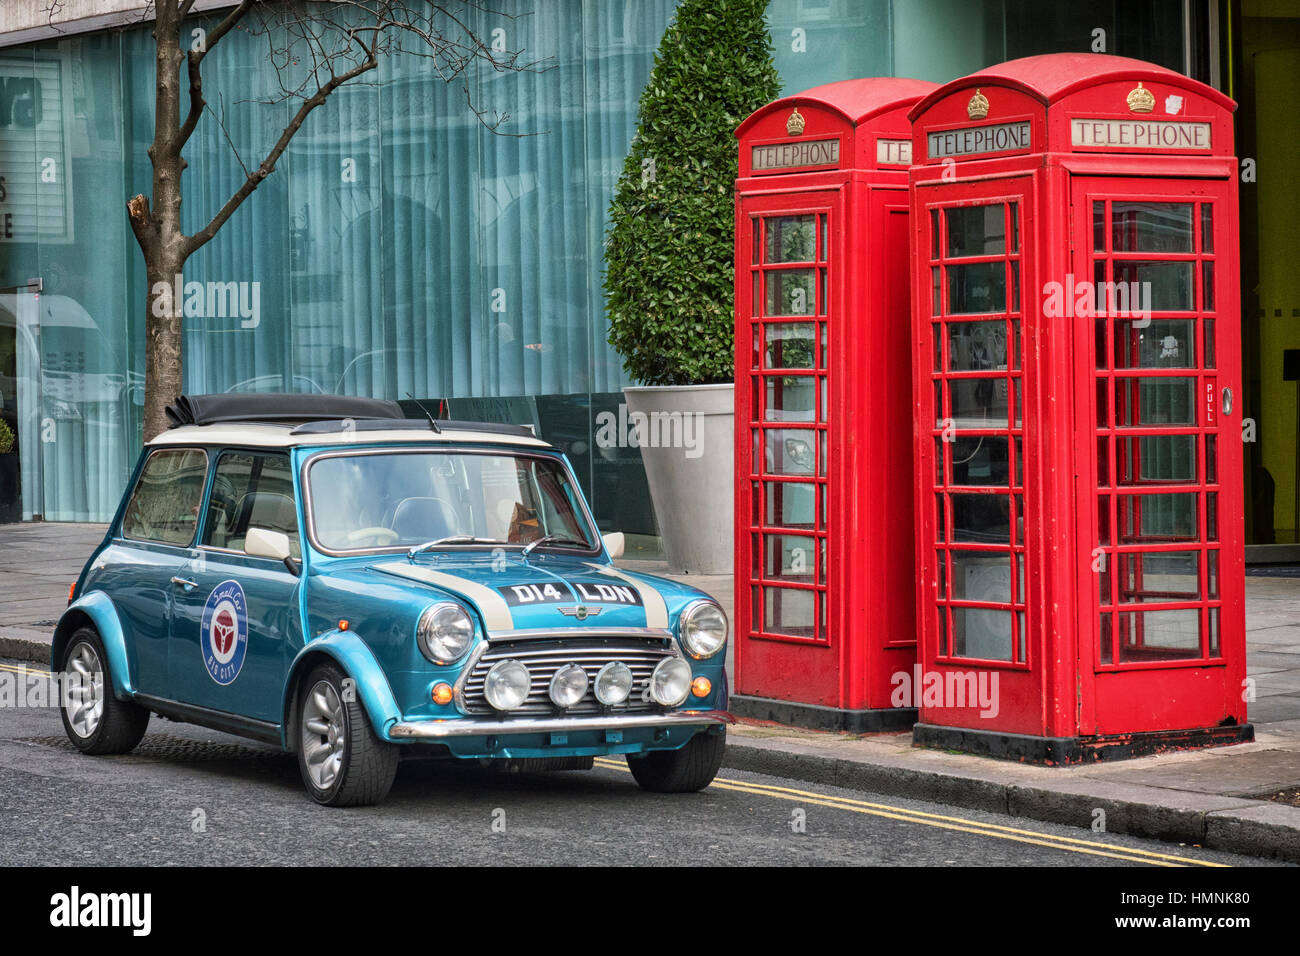 Austin Mini Cooper parked next to red telephone boxes in St Martin's Lane in central London - Stock Image